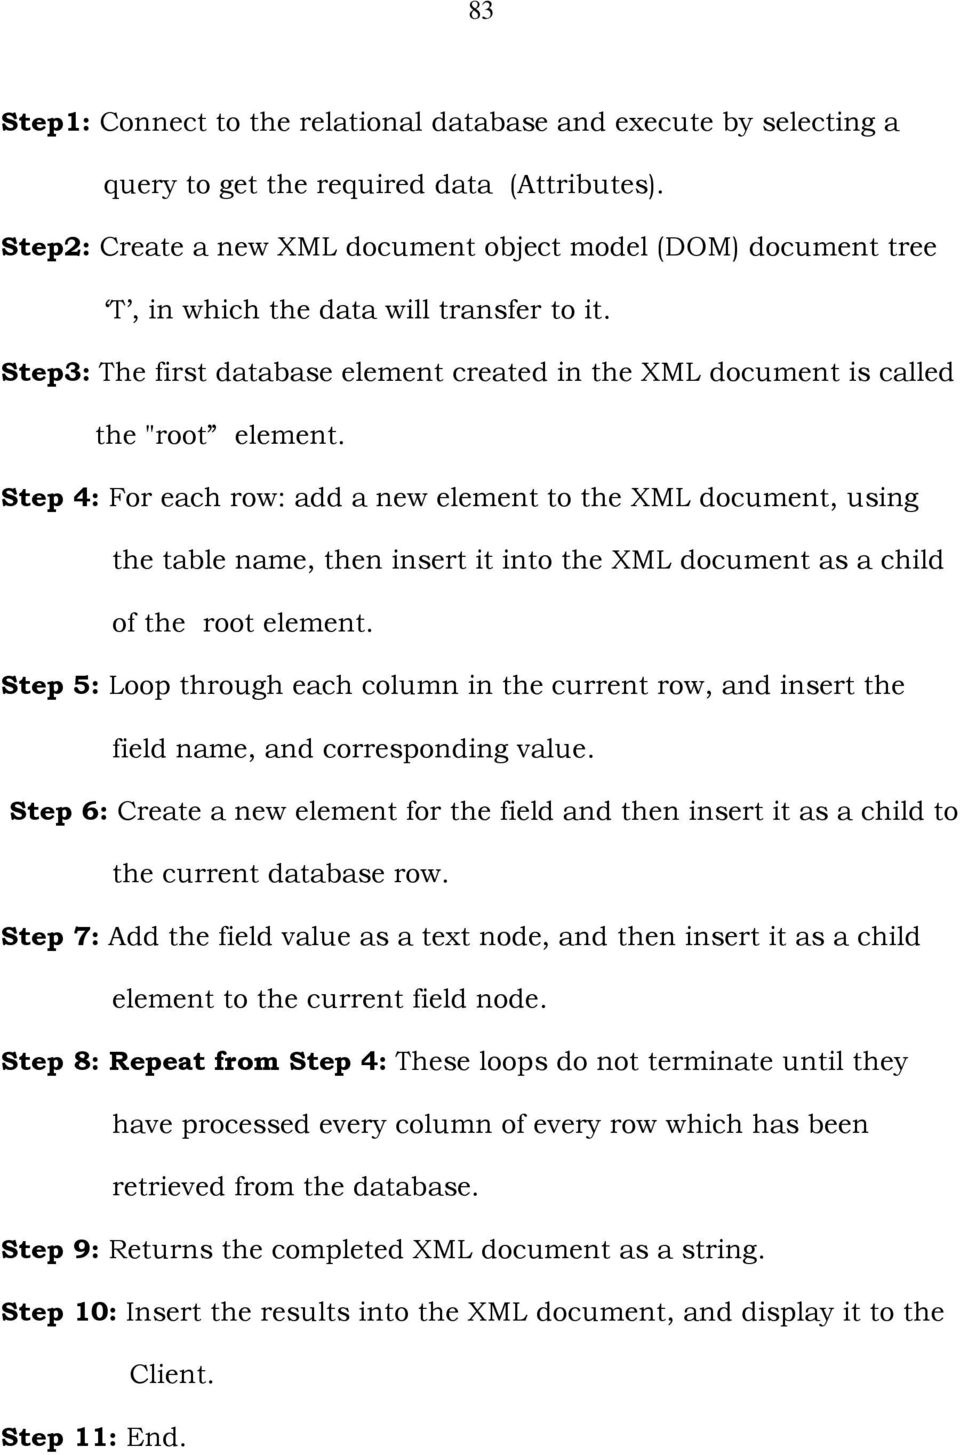 Step 4: For each row: add a new element to the XML document, using the table name, then insert it into the XML document as a child of the root element.